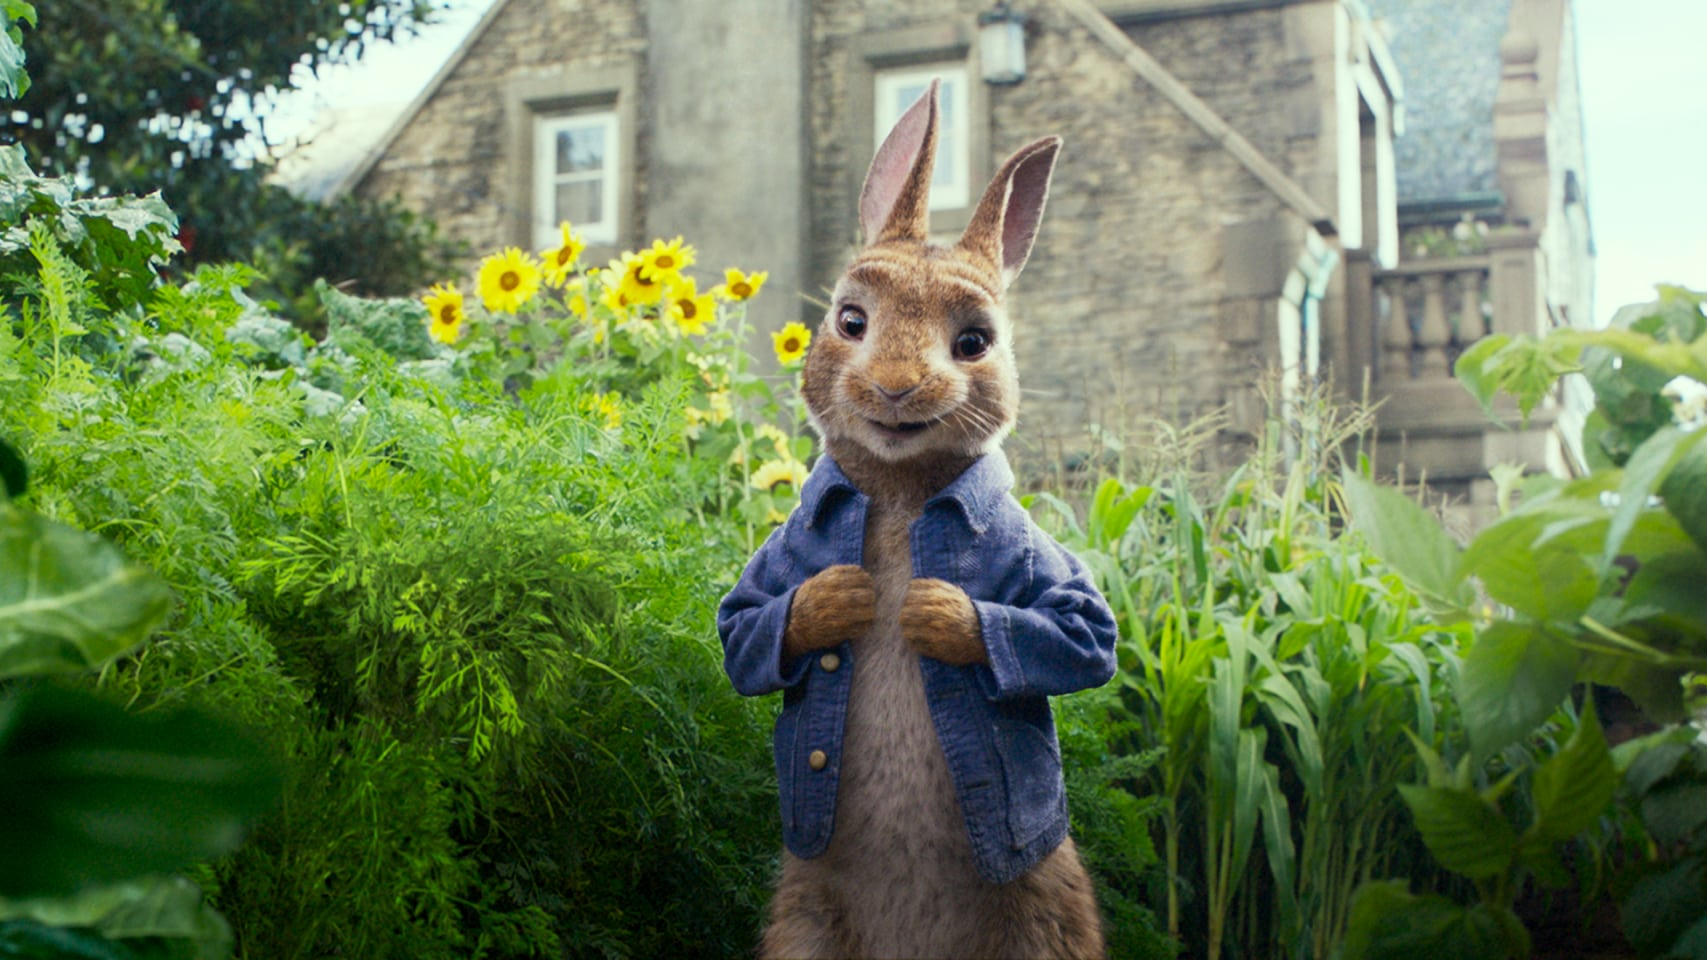 Peter Rabbit - Movie Trailer, Info, Images & More